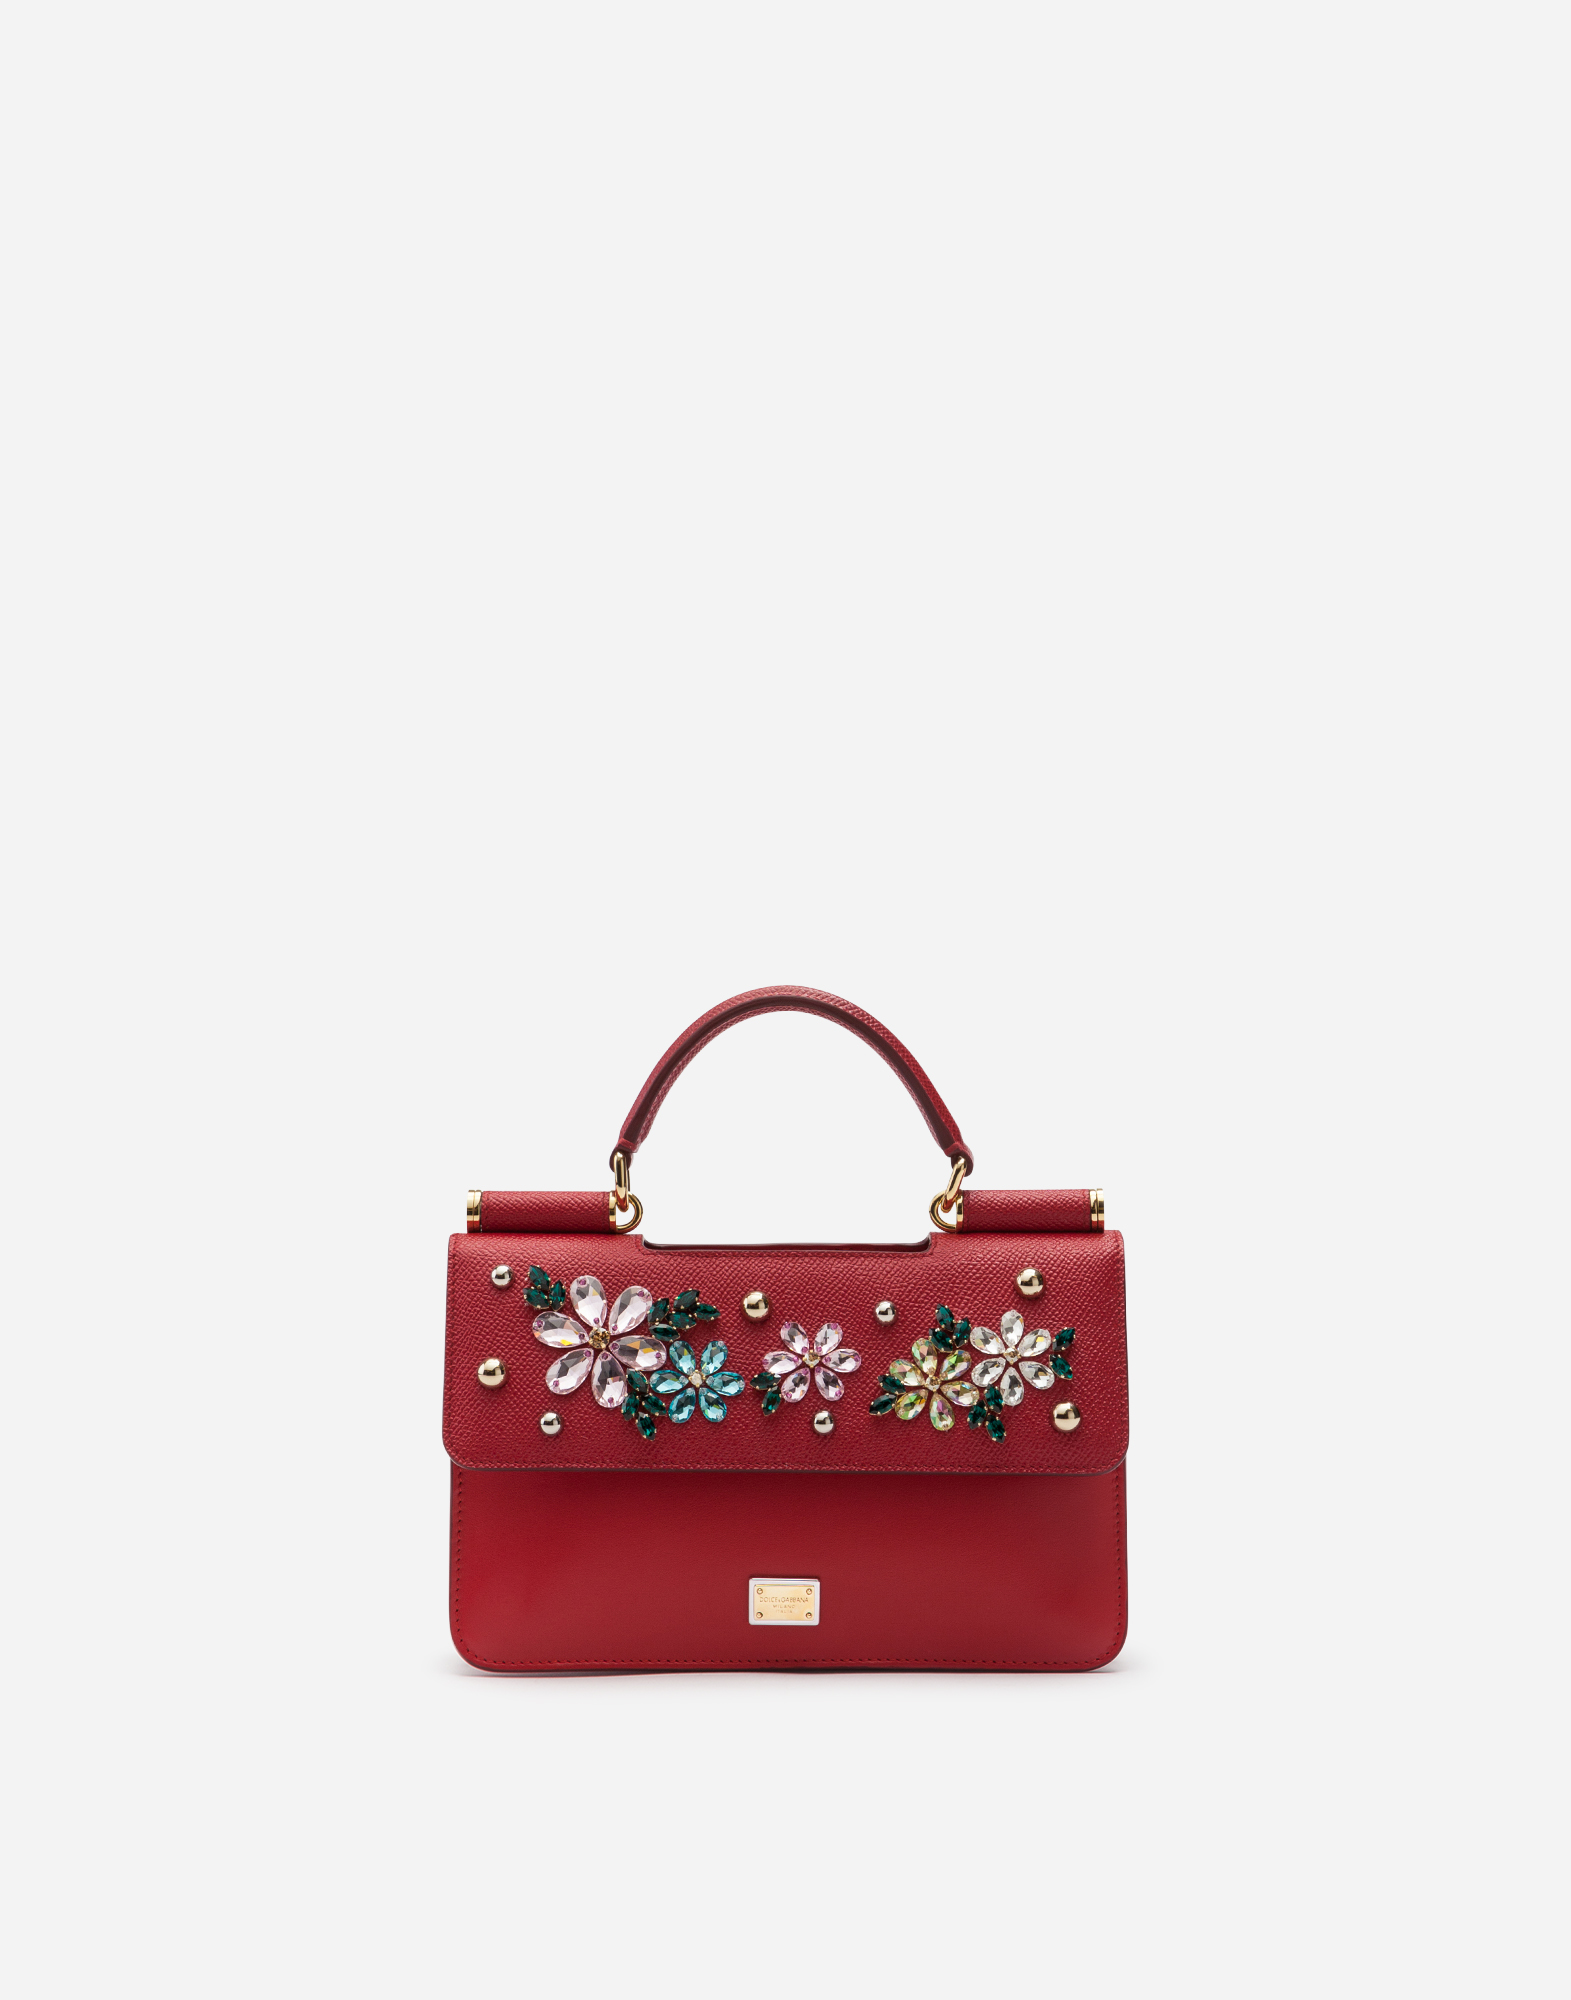 Dolce & Gabbana SICILY MINI BAG IN DAUPHINE CALFSKIN WITH EMBROIDERY